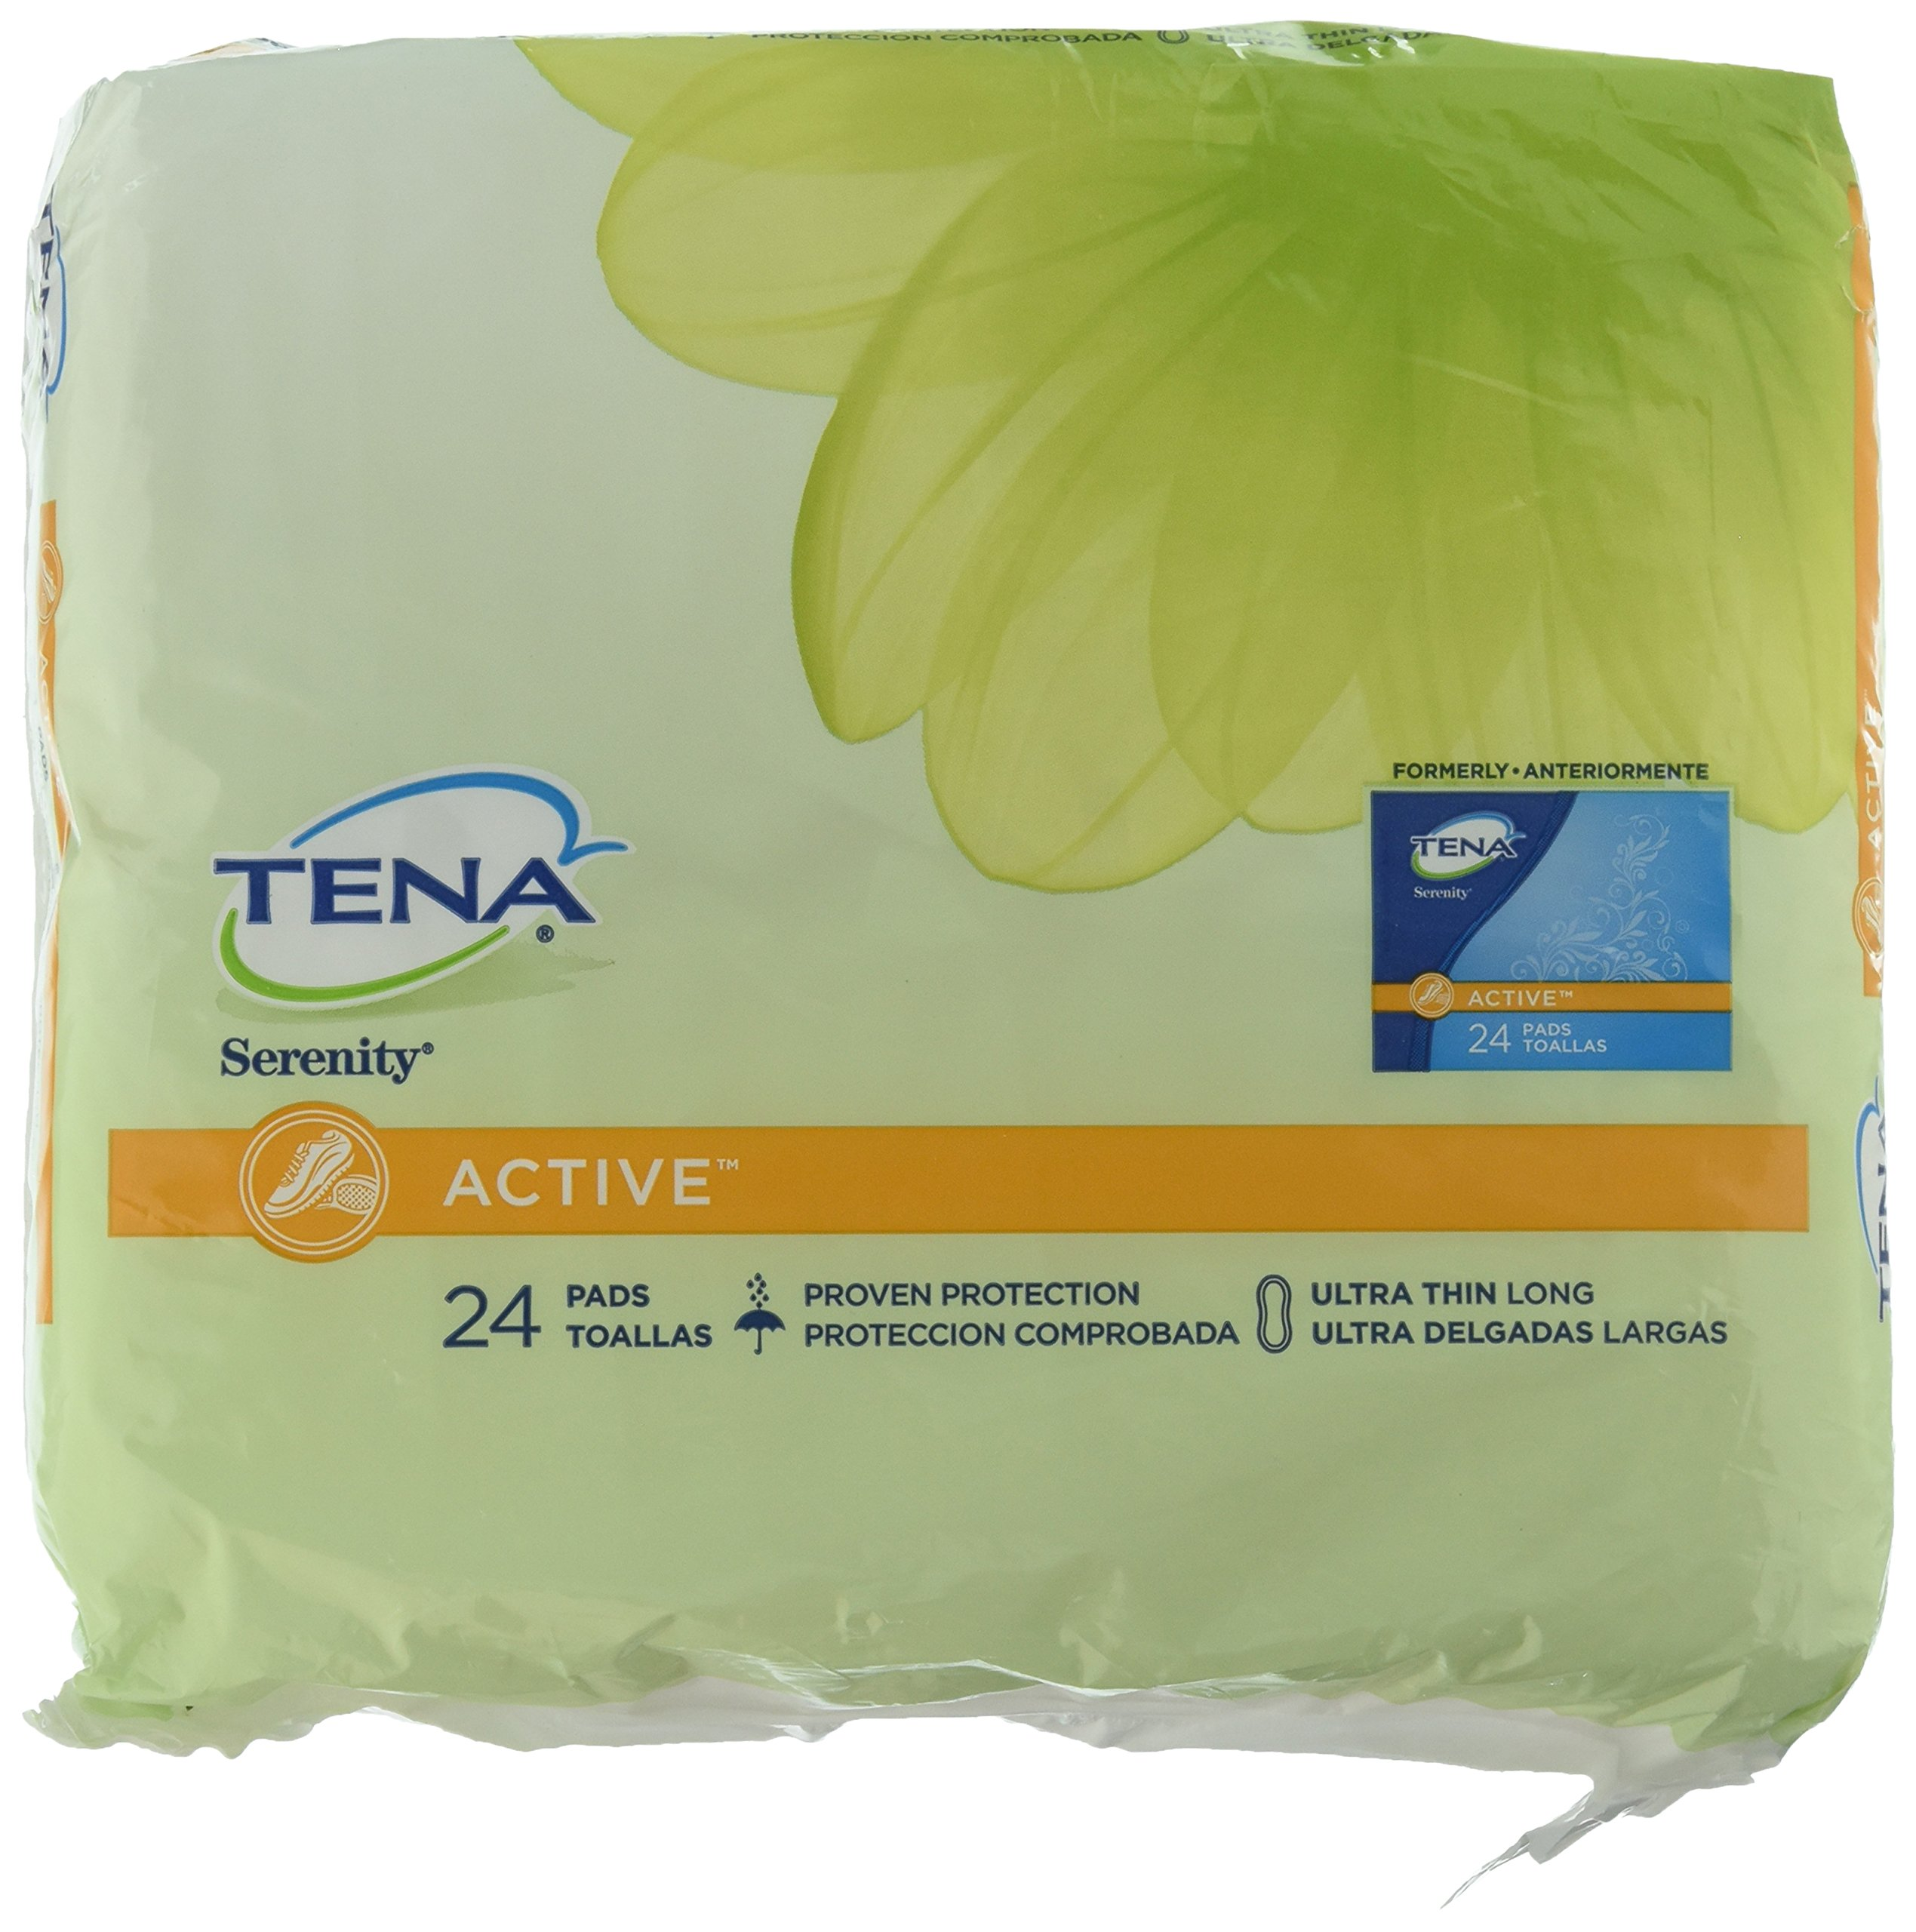 Amazon.com: TENA Intimates Light Ultra Thin Pads Long - Case of 144: Health & Personal Care